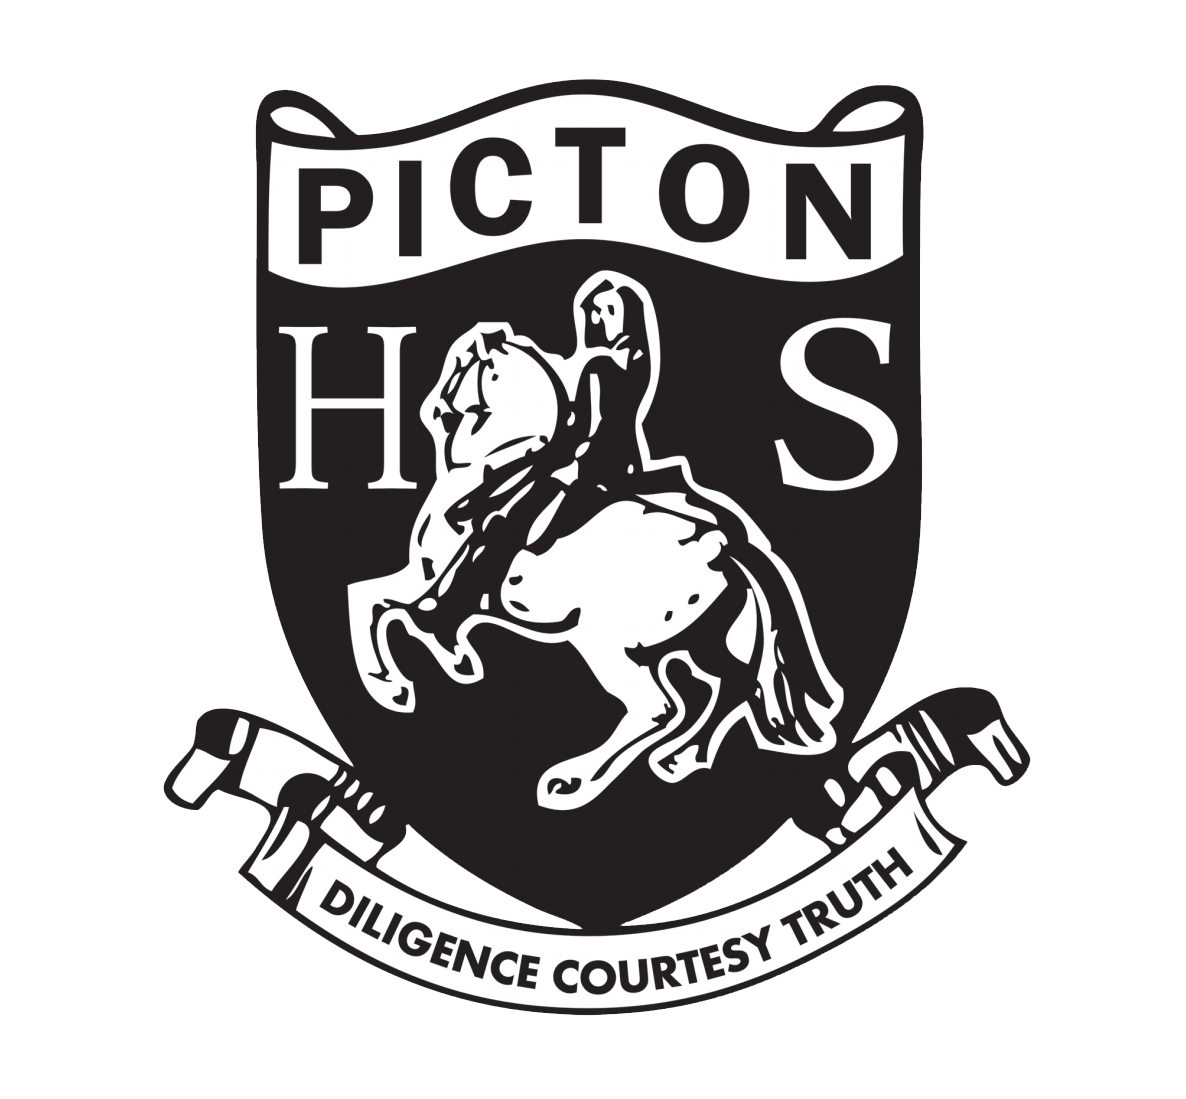 Picton High School logo